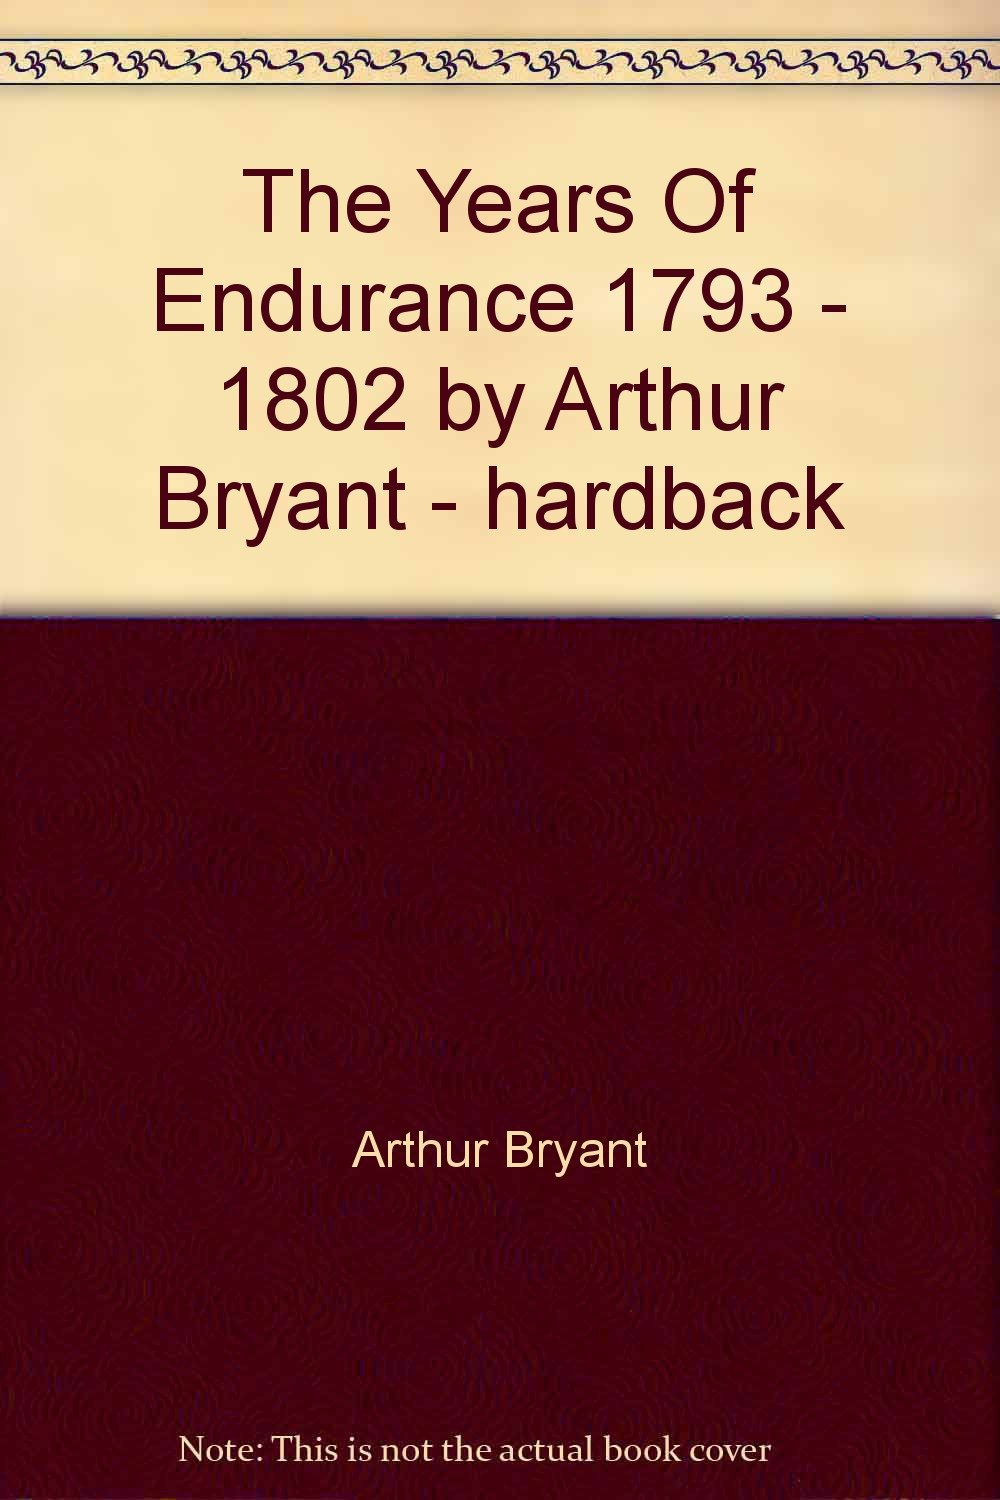 The Years of Endurance: 1793-1802